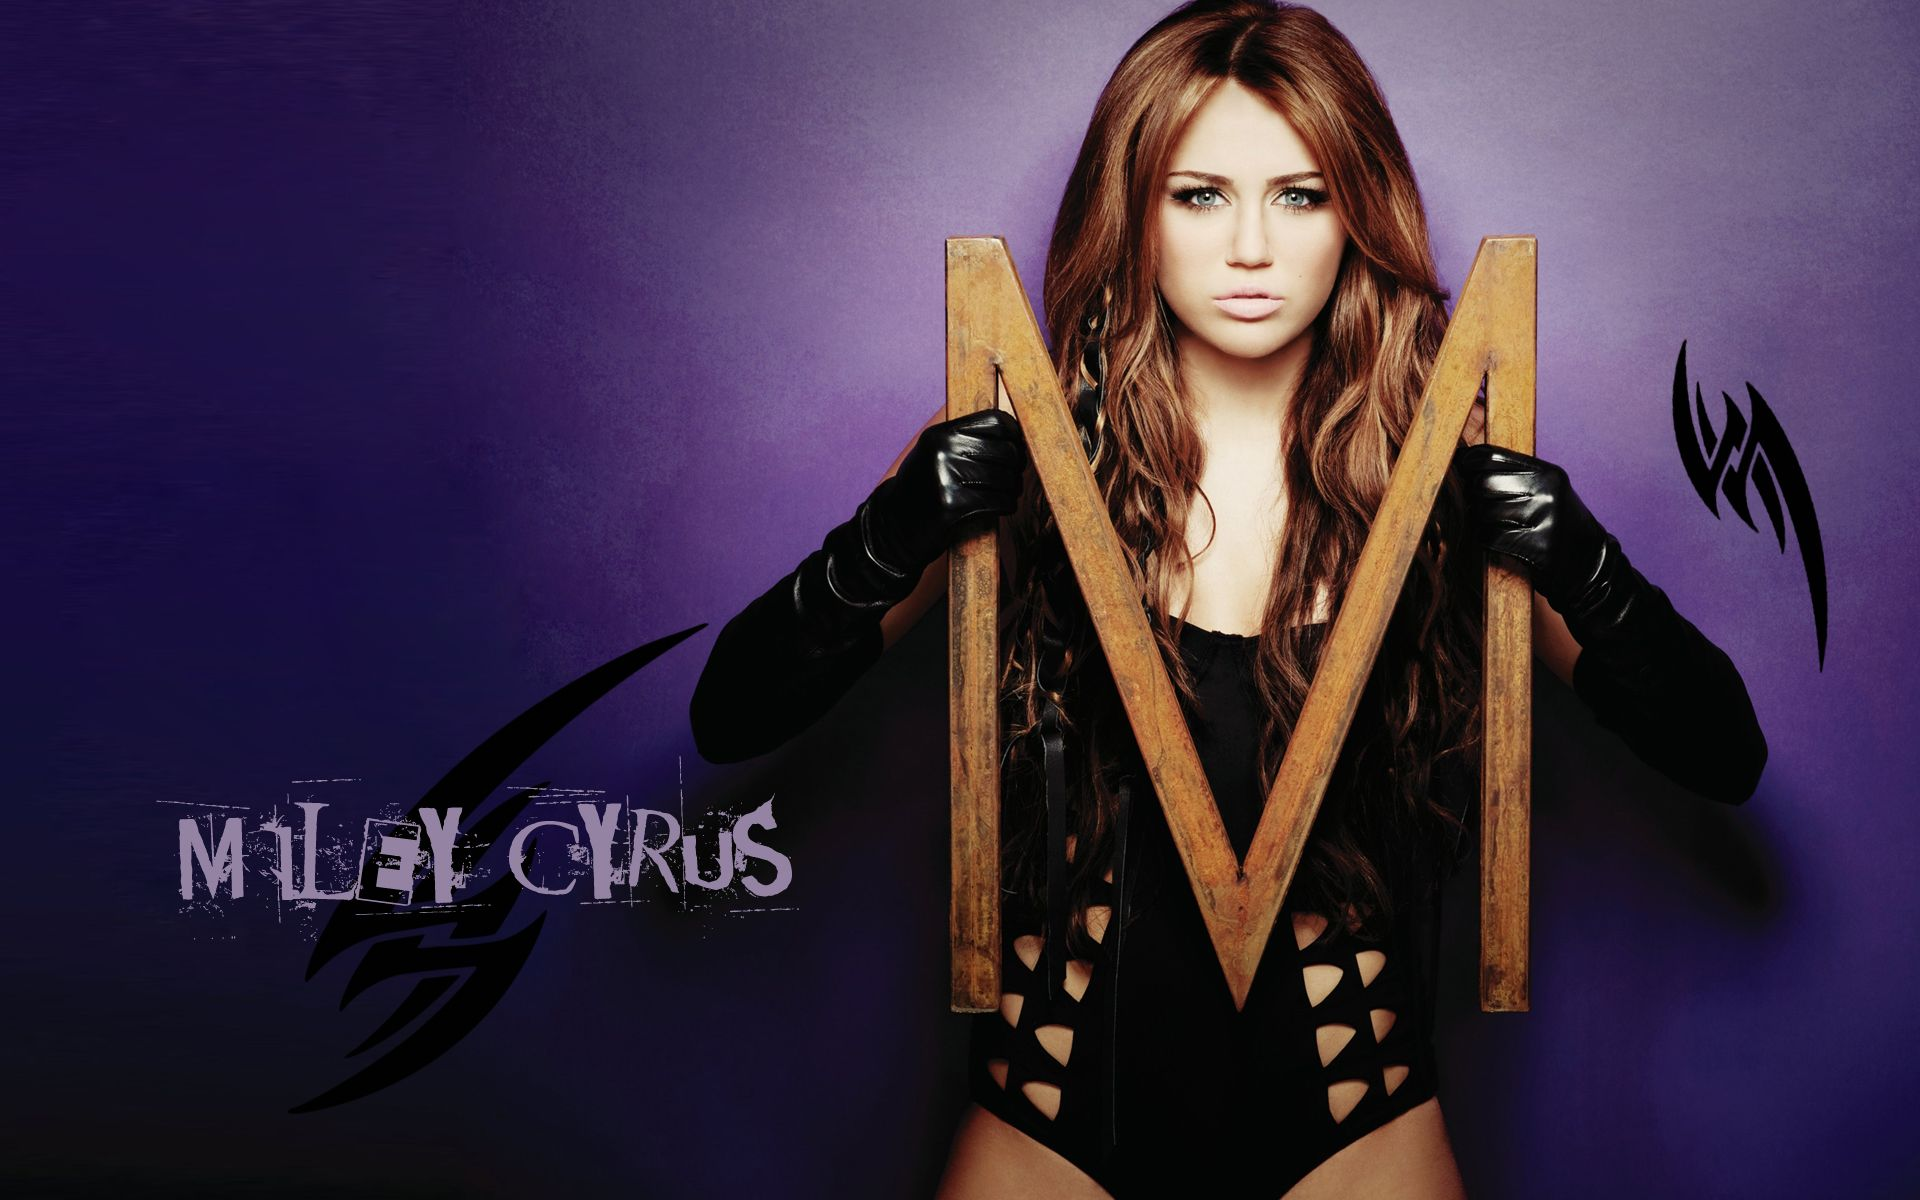 Miley Cyrus hot and sexy Wallpaper Miley Cyrus American Atress 1920x1200